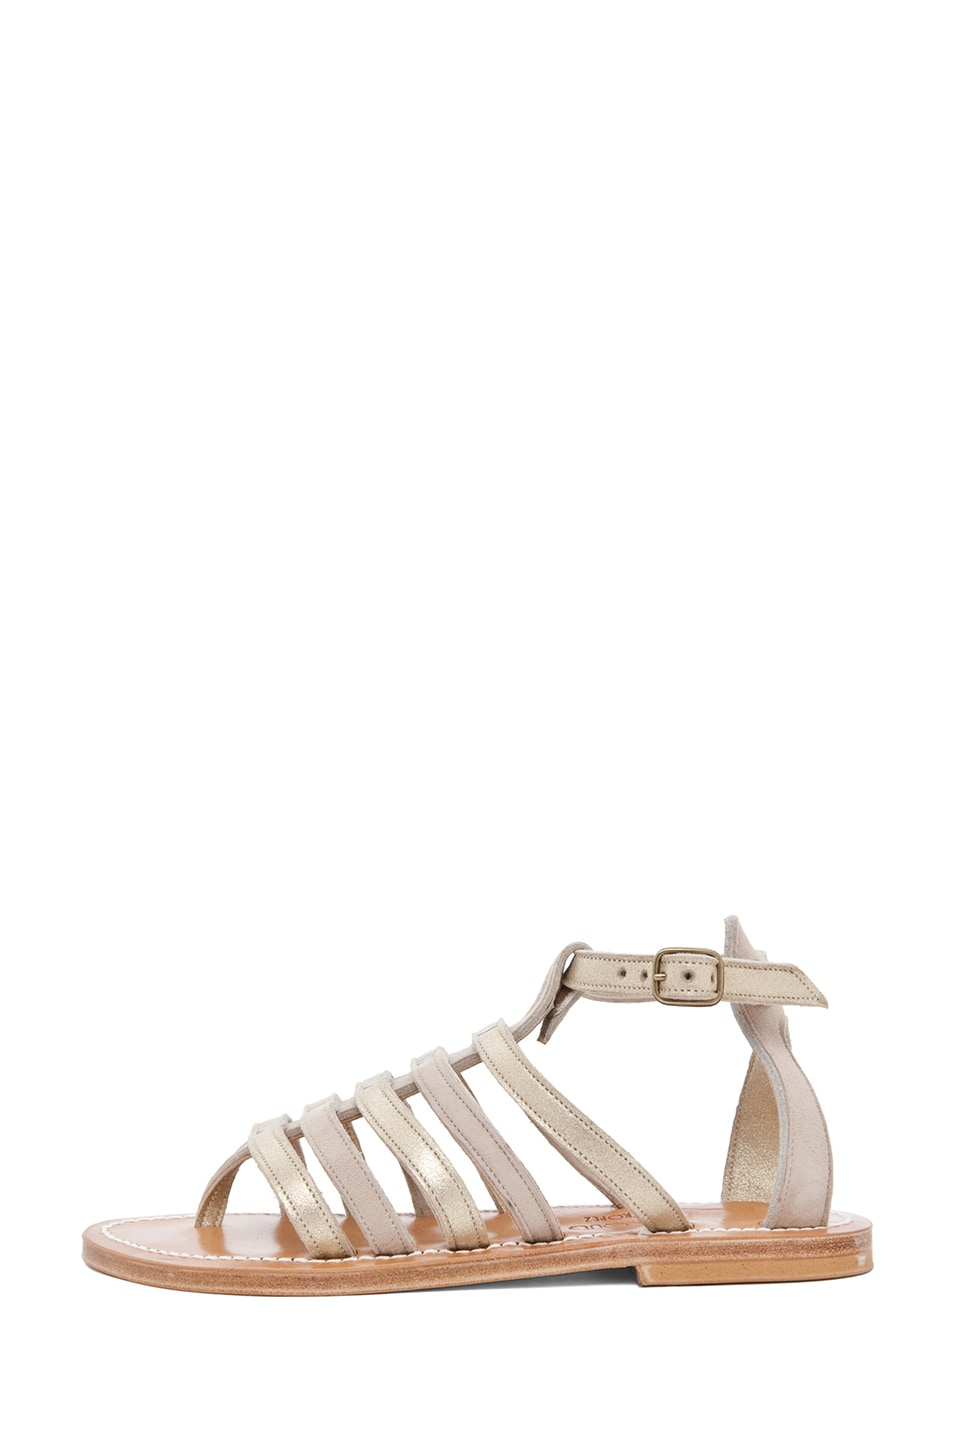 Image 1 of K Jacques Agopos Suede Interbi Gladiator Sandals in Nude & Gold